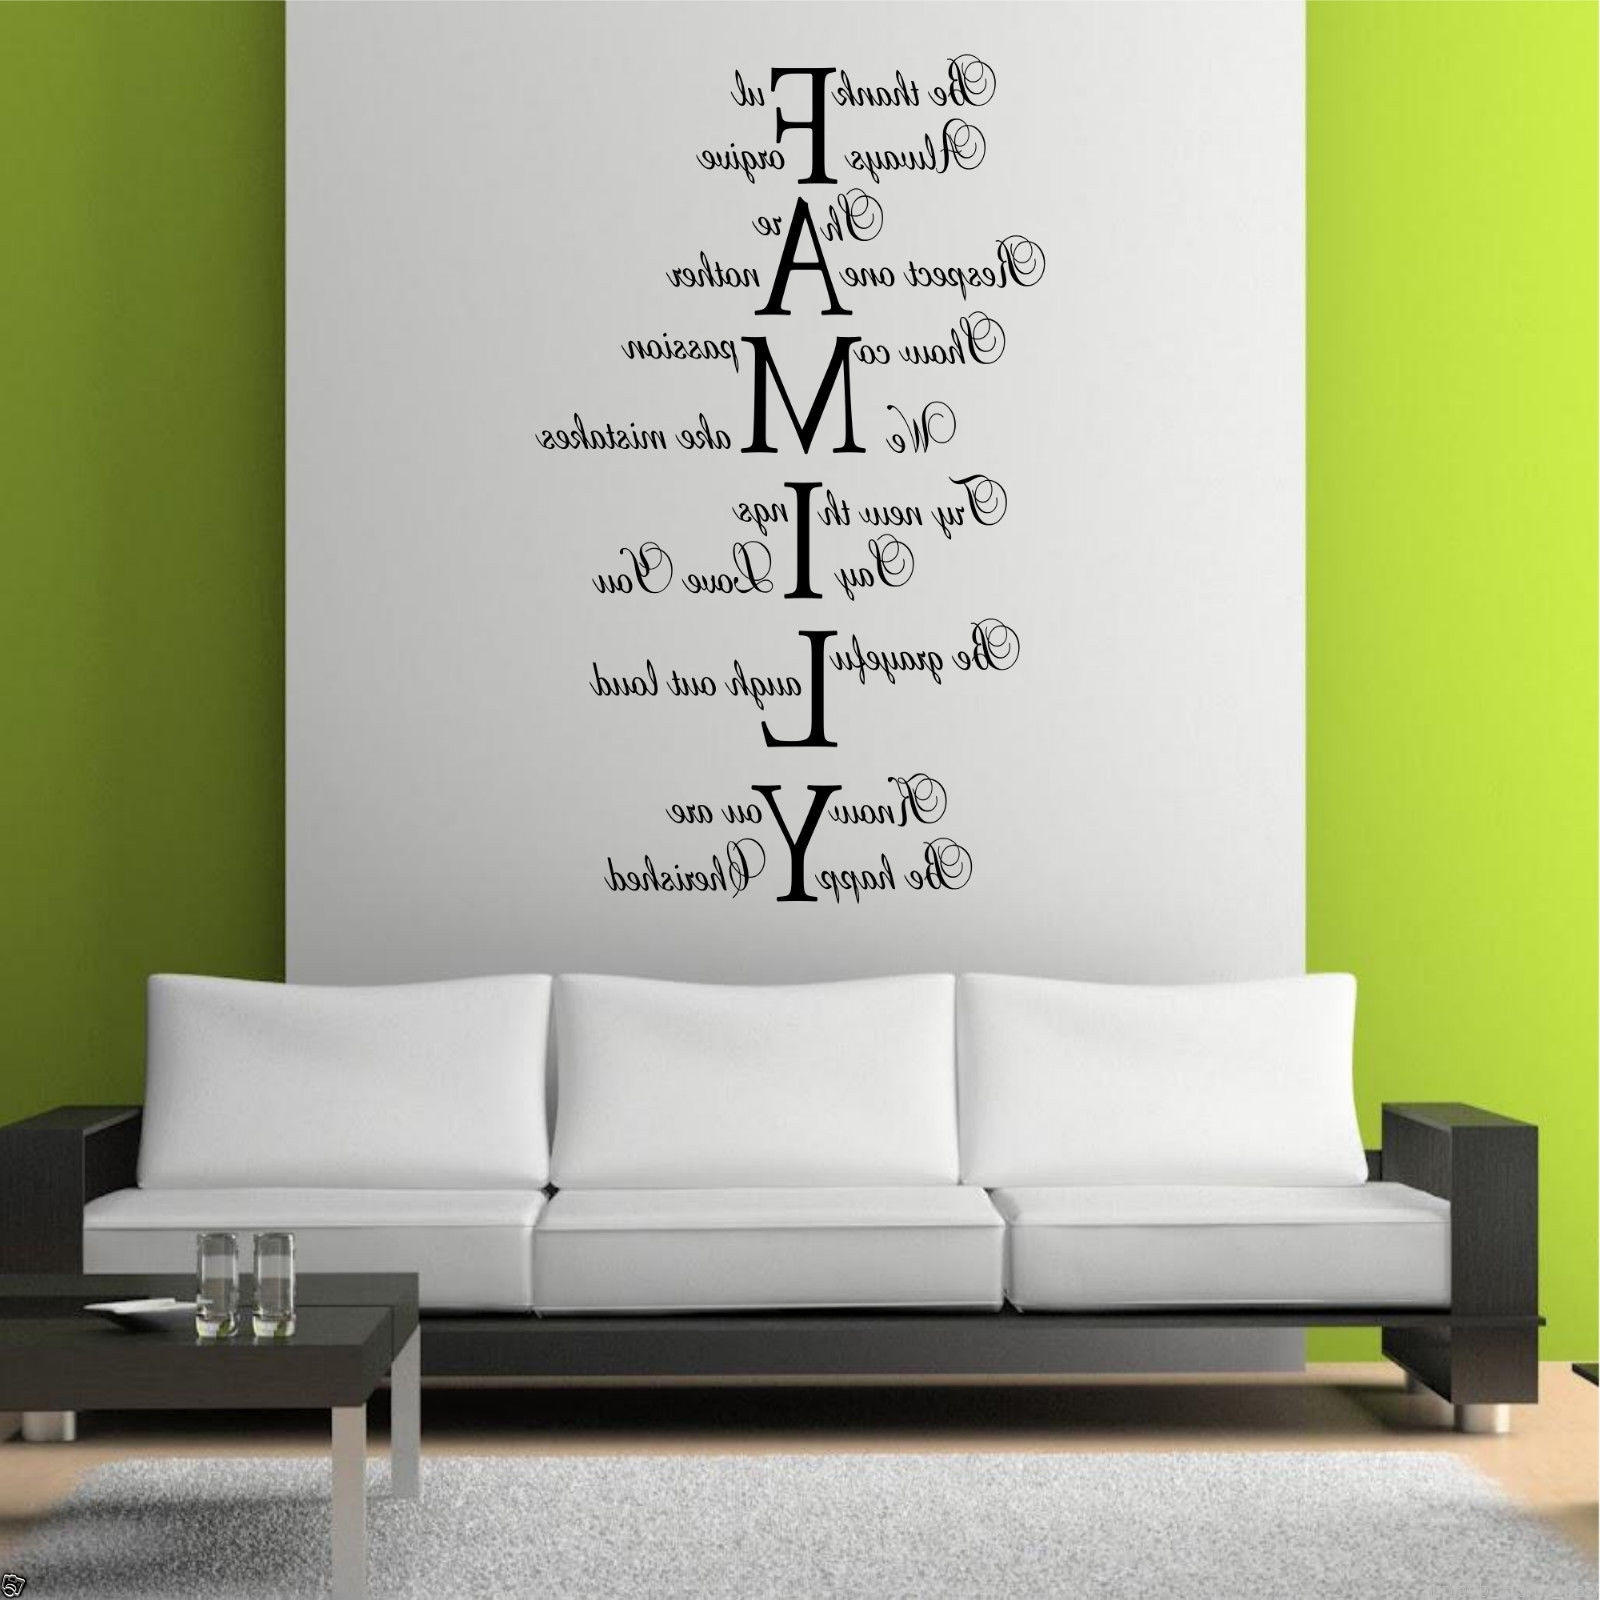 Family Wall Art For Preferred Family Love Life Wall Art Sticker Quote Room Decal Mural Transfer (View 3 of 15)